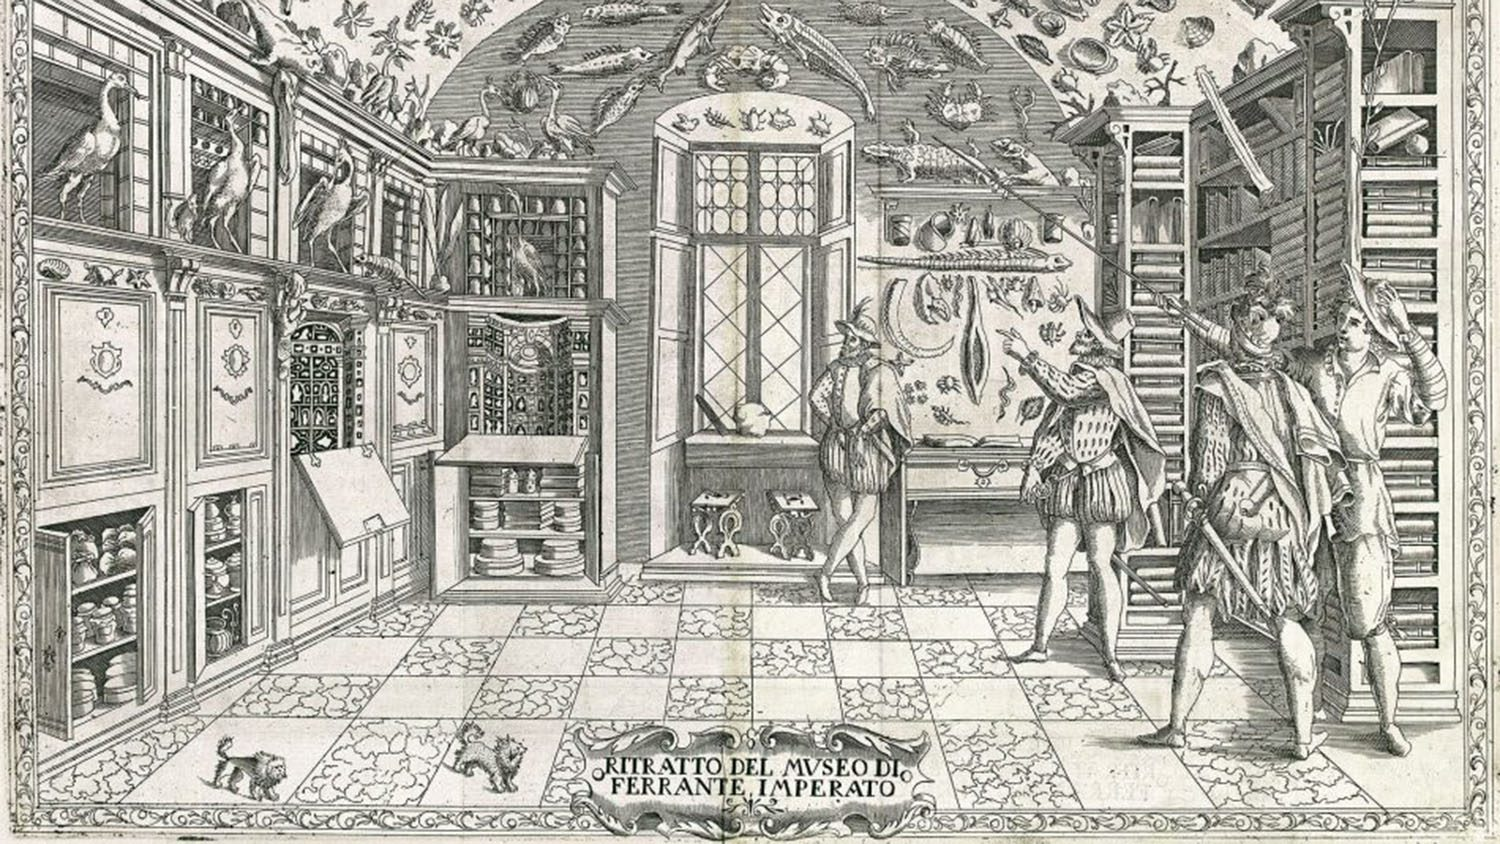 Engraving from Ferrante Imperto's Dell'Historia Naturale (Naples, 1599)